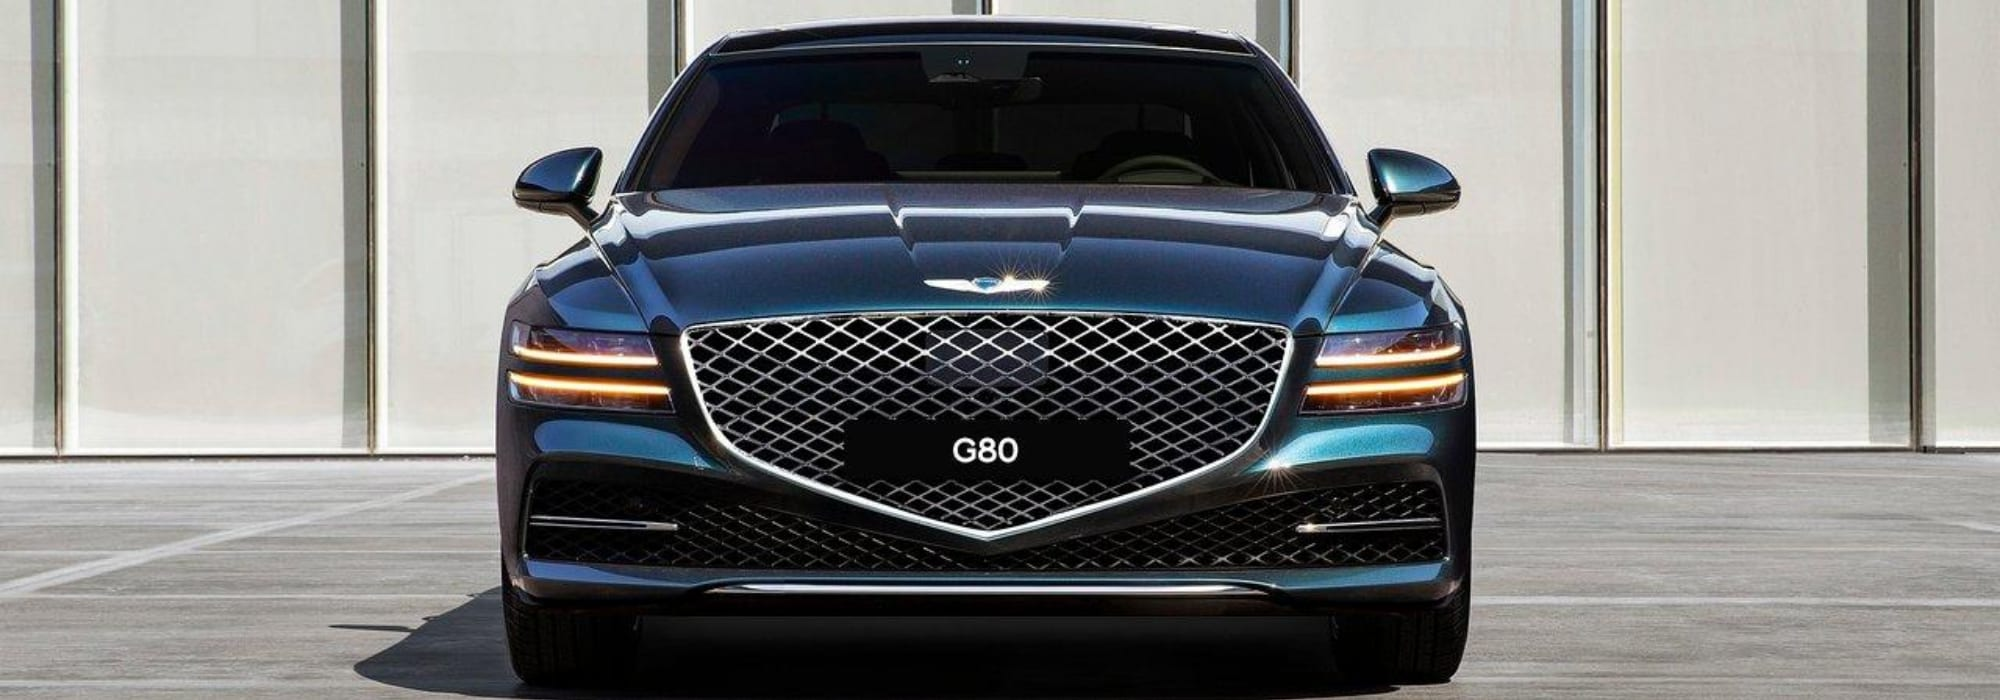 New 2021 Genesis G80 Luxury Sedan hero image